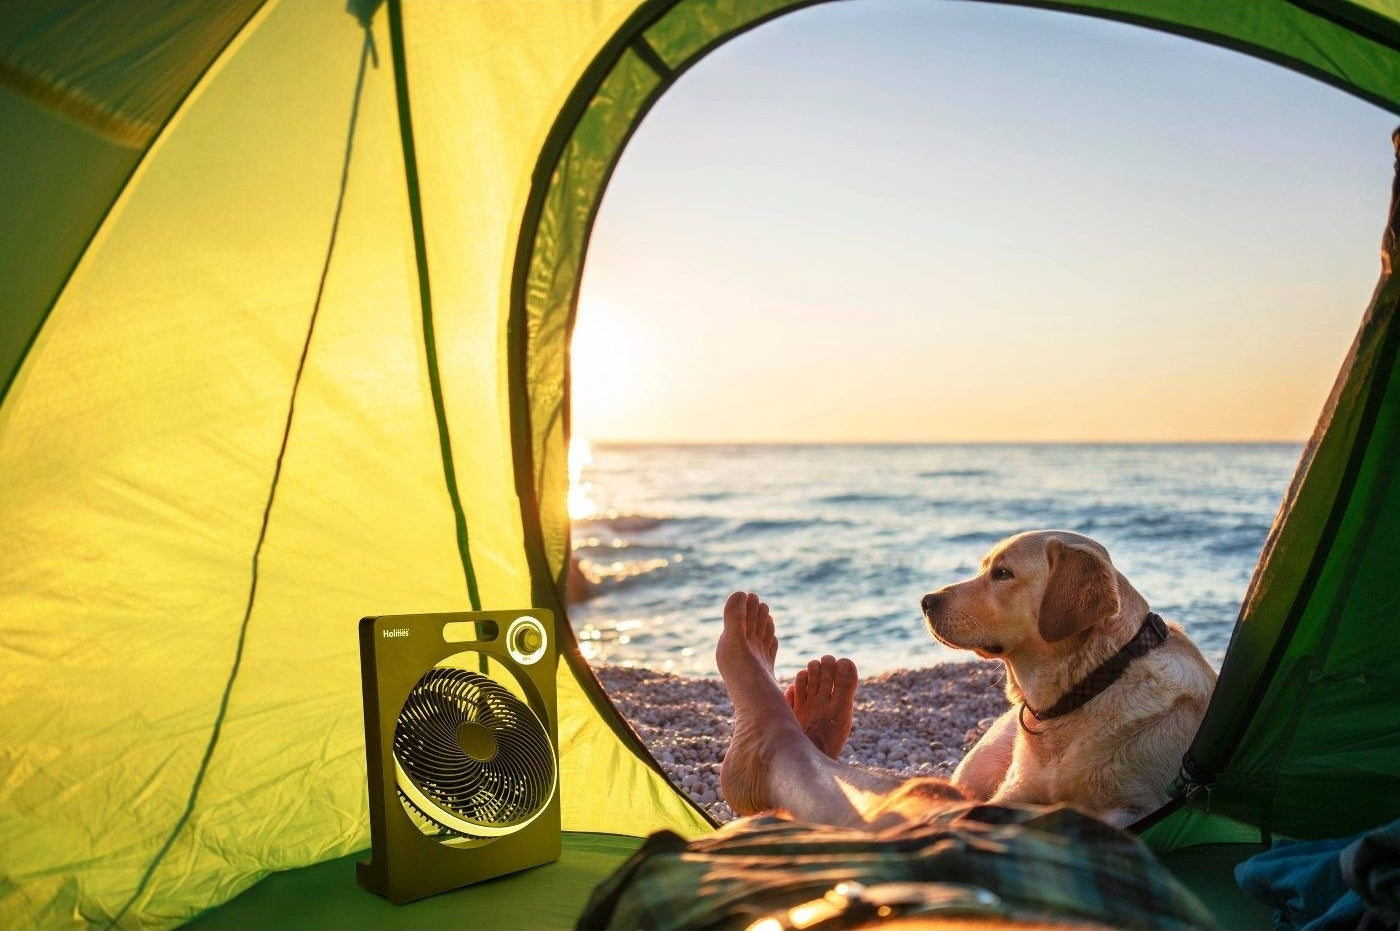 the fan in a green tent set up on the beach with a dog